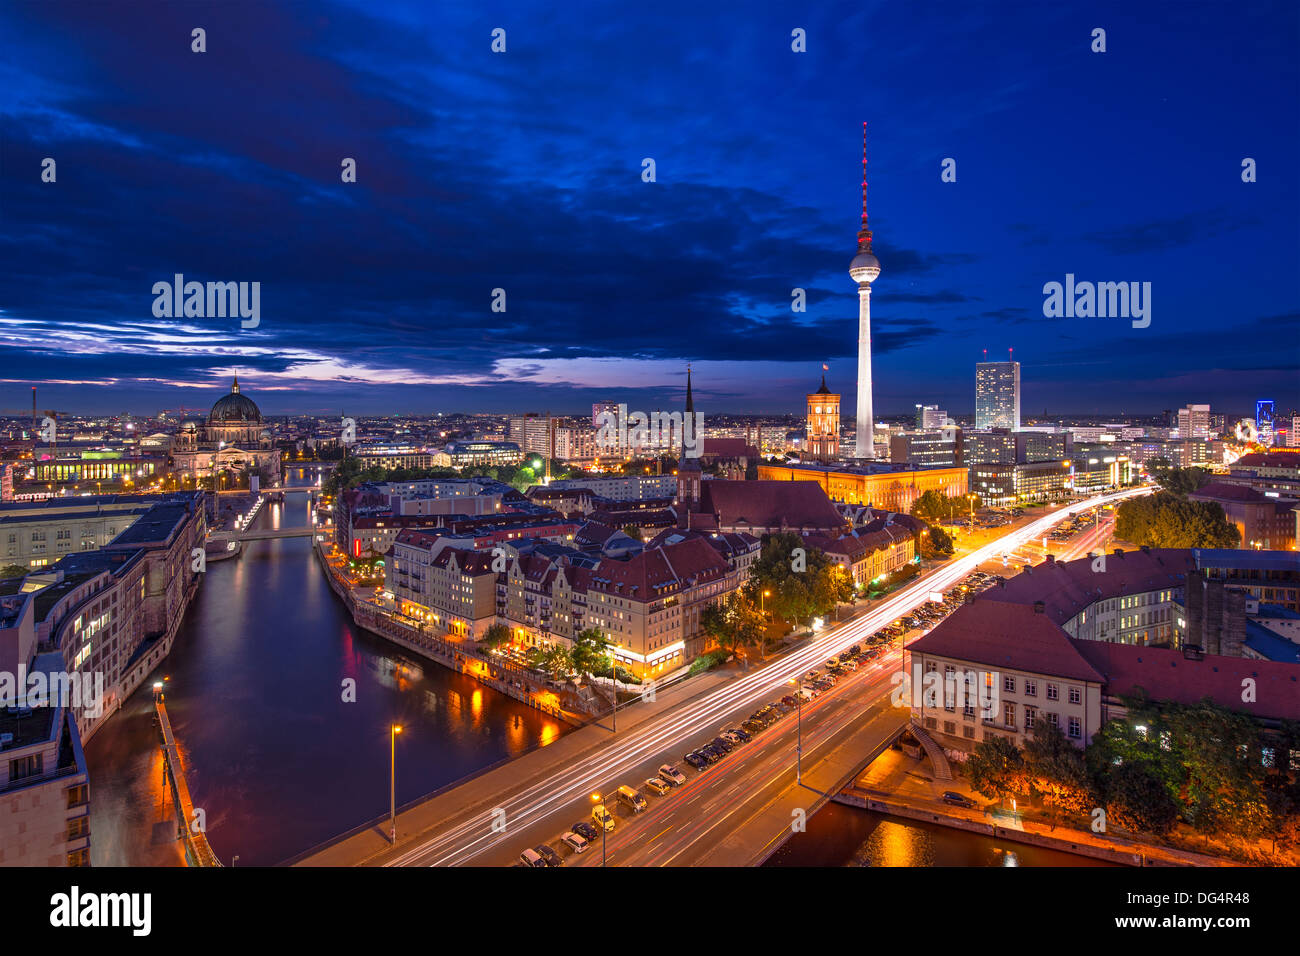 Berlin, Germany viewed from above the Spree River. - Stock Image